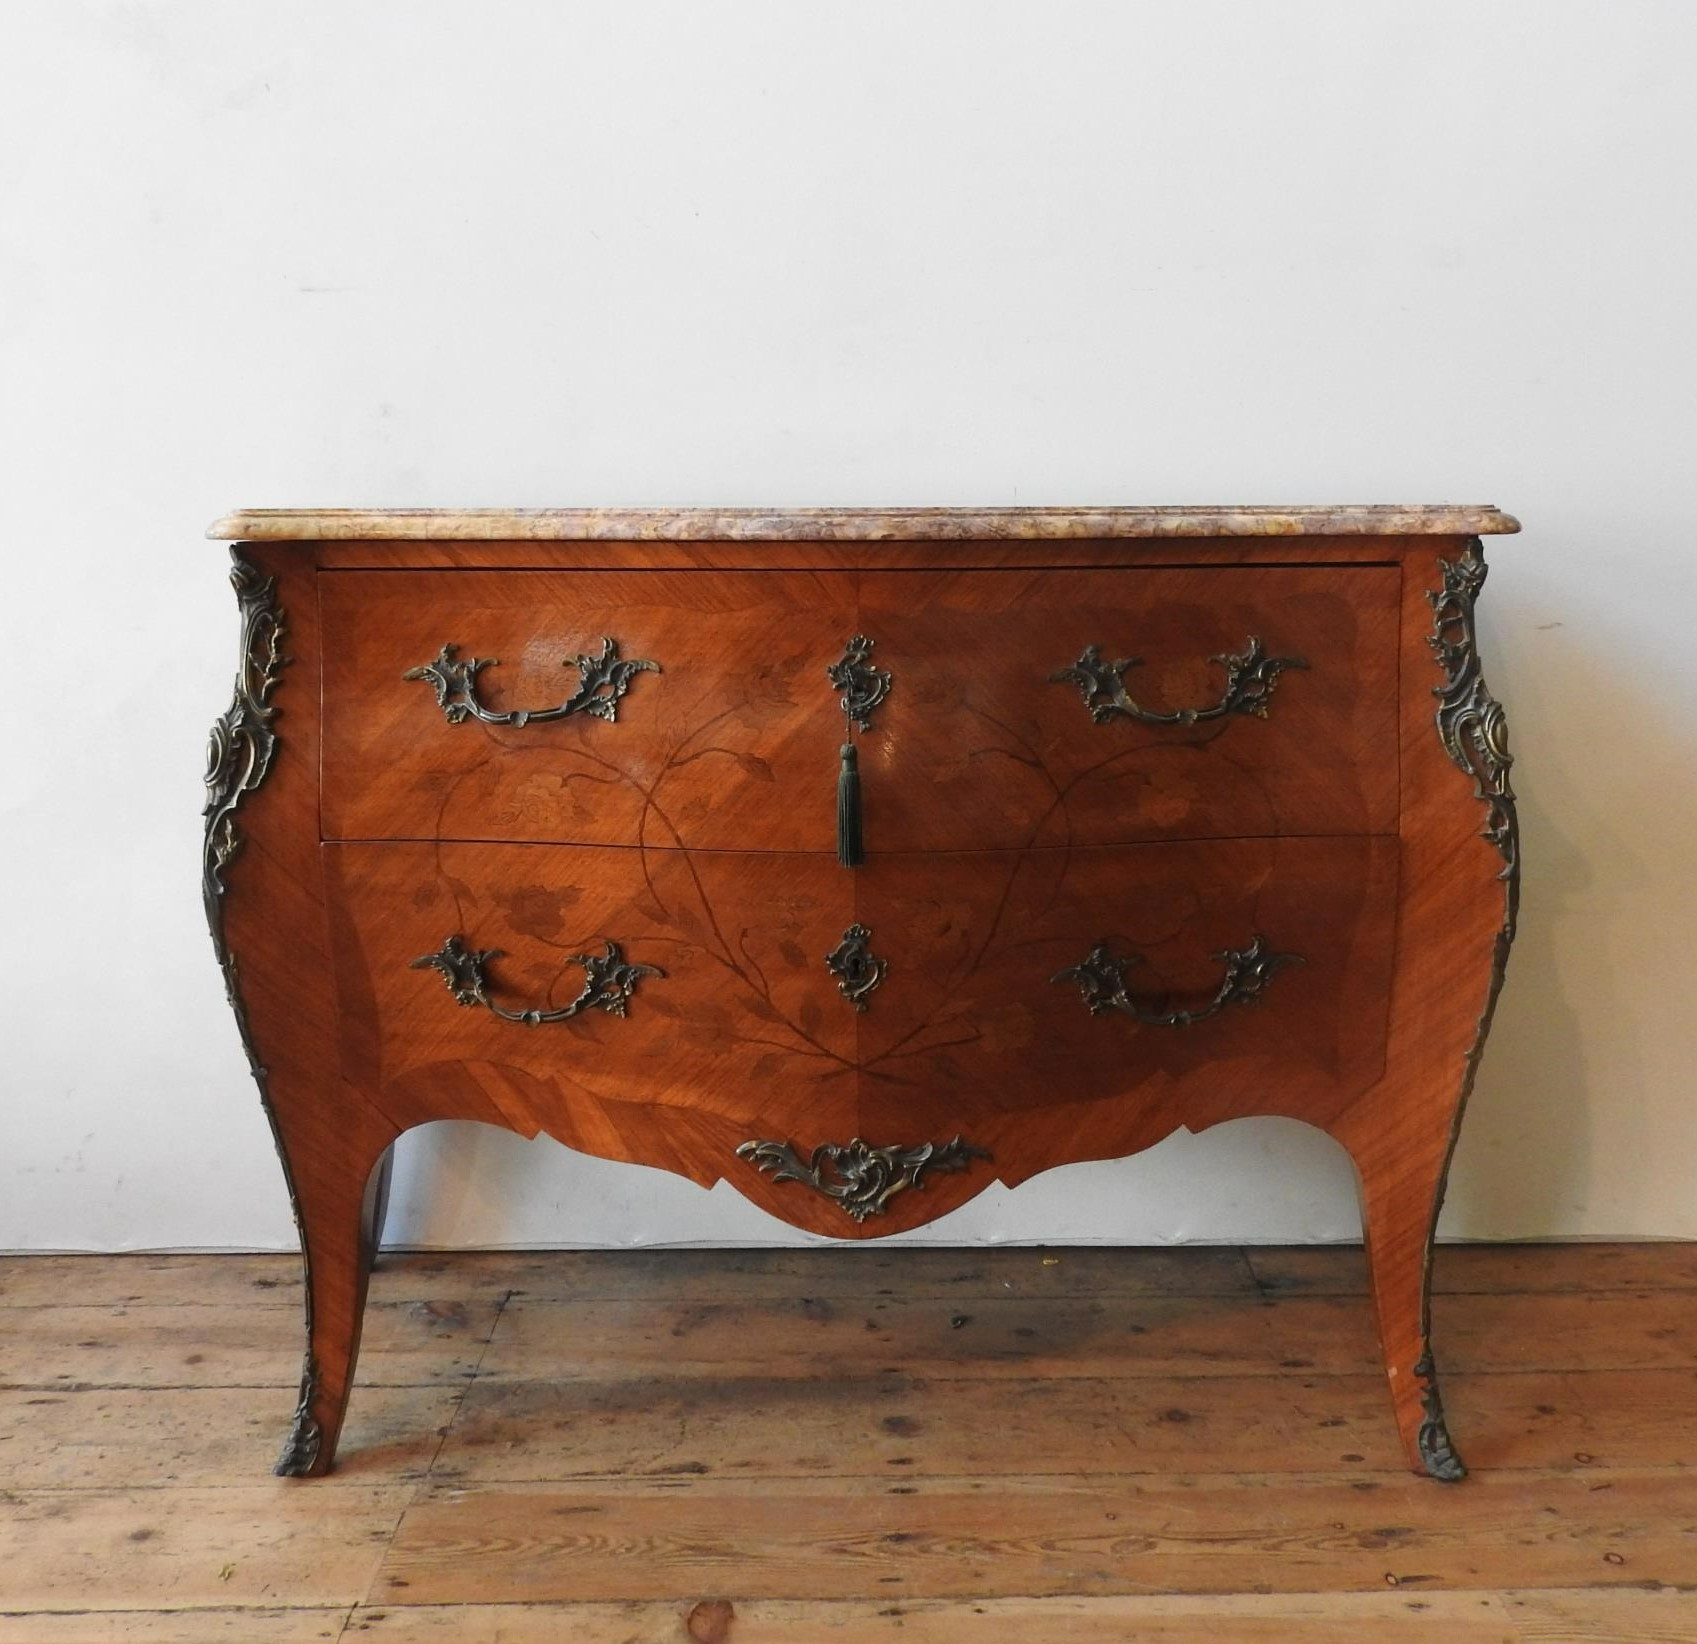 A 20th CENTURY LOUIS XV STYLE CONTINENTAL MARBLE TOP BOMBE CHEST, the two drawer chest with floral - Image 2 of 4